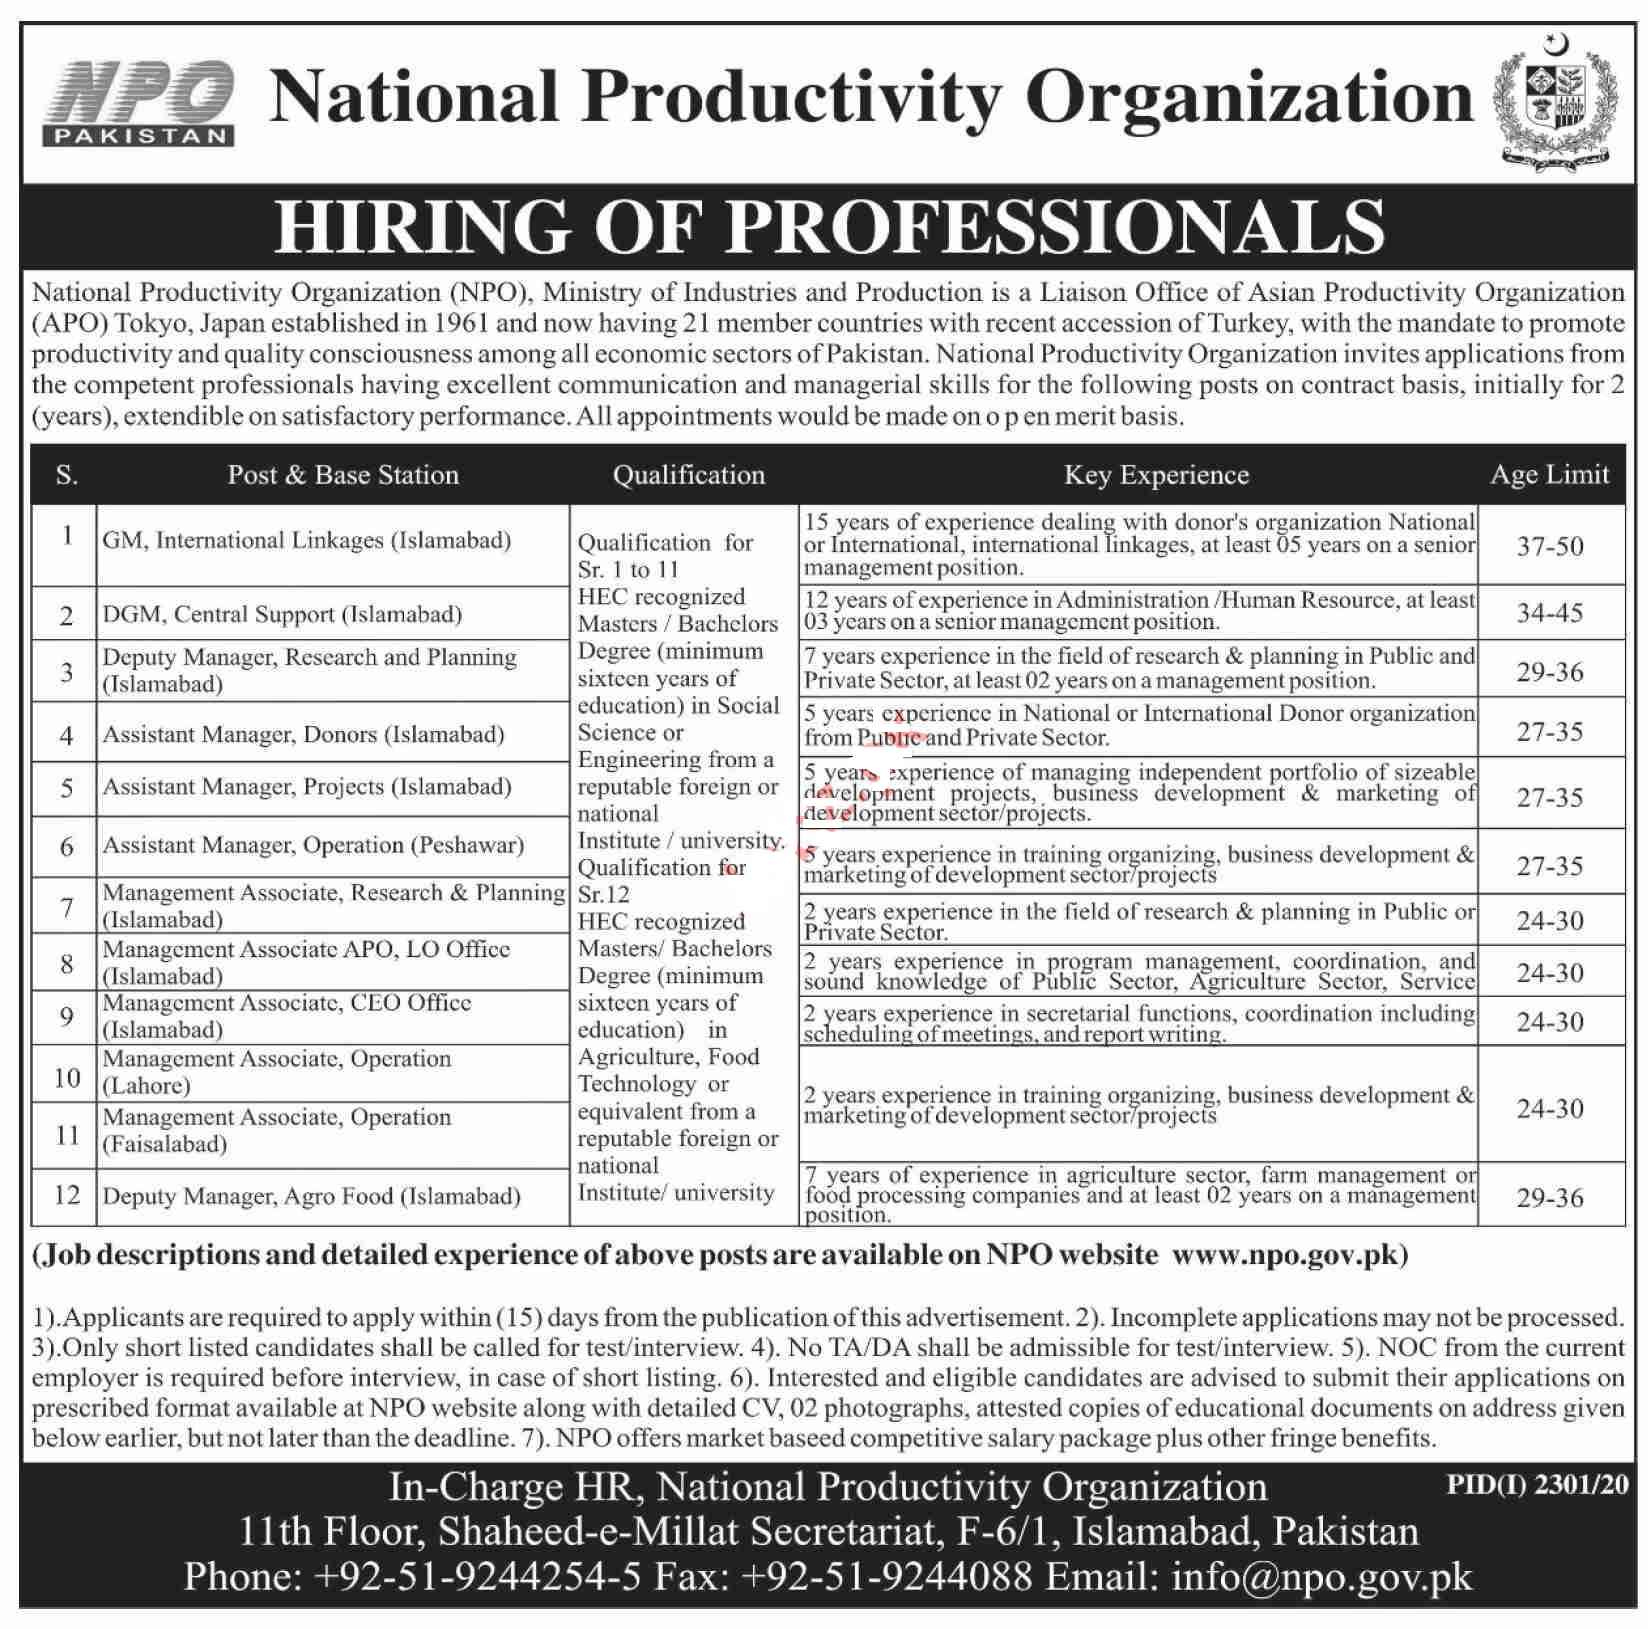 NPO National Productivity Organization Jobs 2020 for Assistant Managers